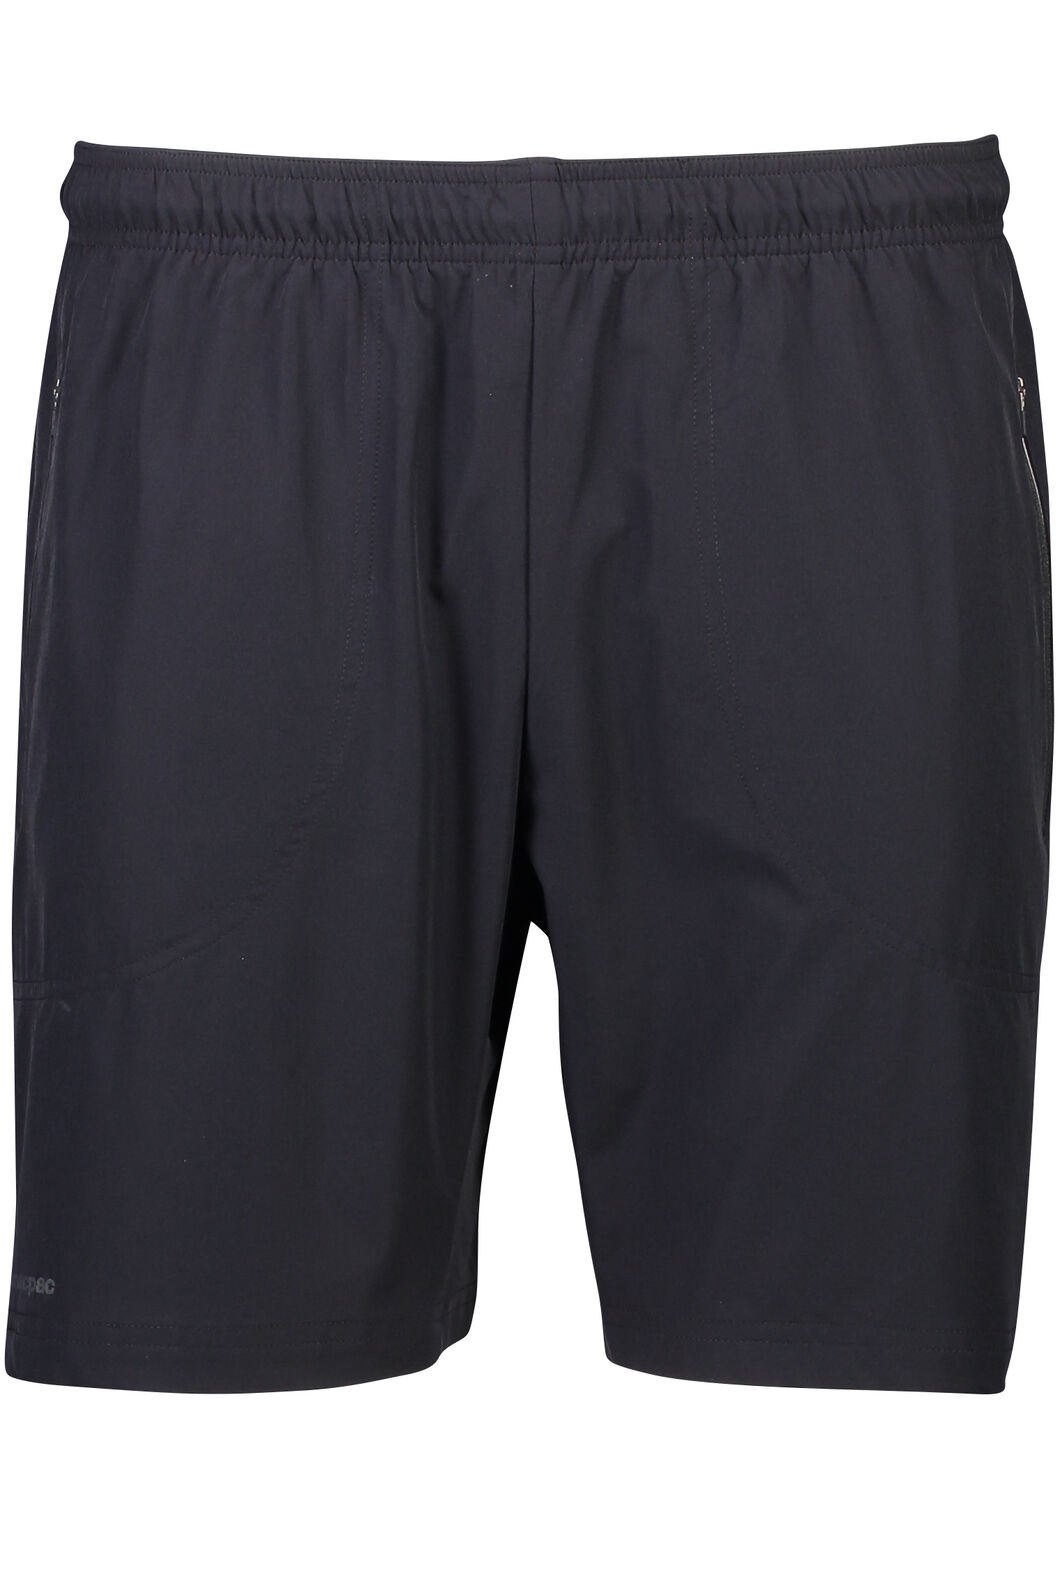 Macpac Fast Track Shorts - Men's, Black, hi-res